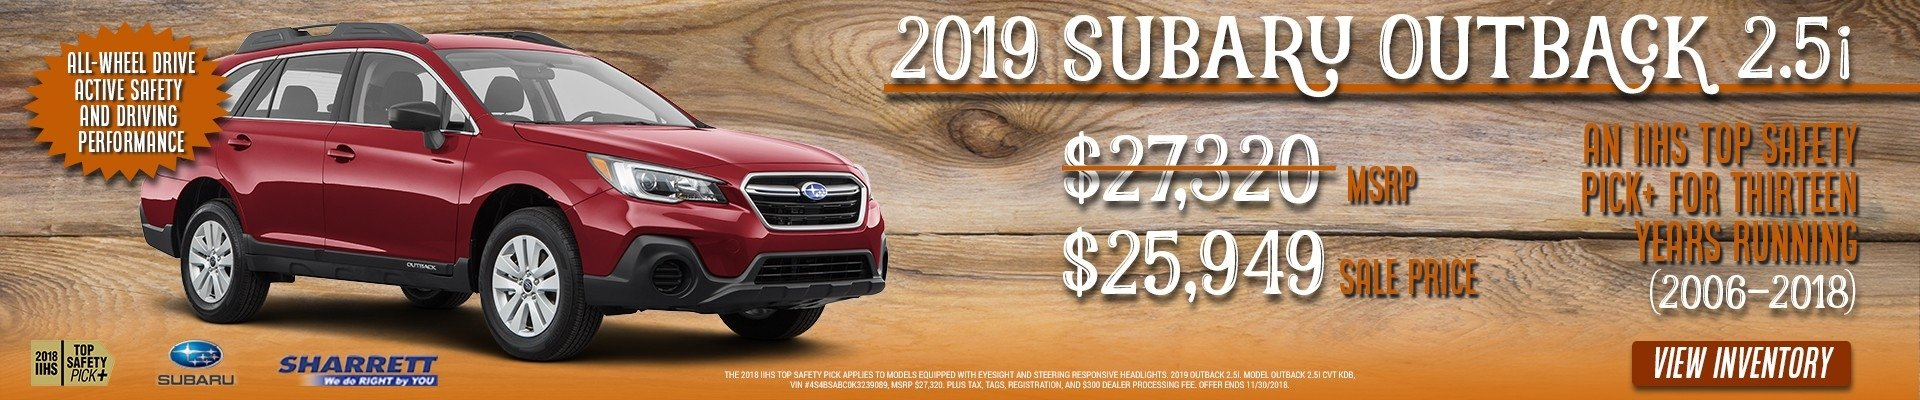 Get a 2019 Subaru Outback 2.5i for $25,949 at Sharrett Subaru of Hagerstown, MD